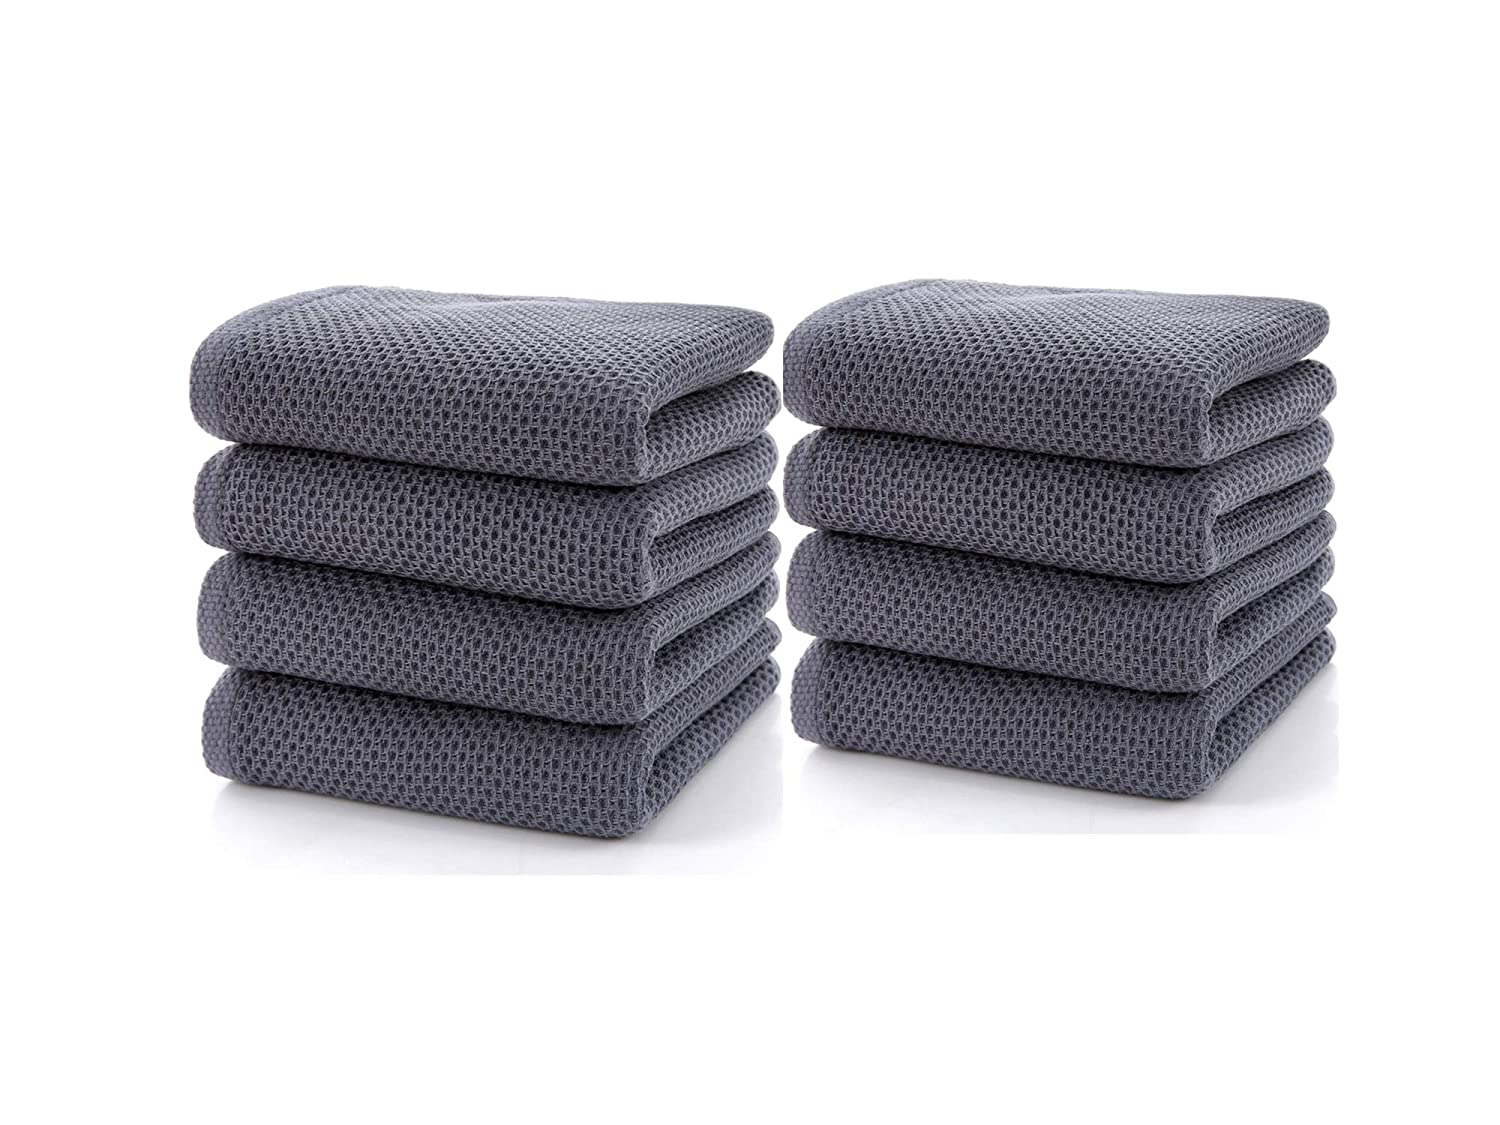 Cc Caihong Bathroom Towels 100 Cotton Waffle Weave Drying Natural Hand Towel Set 8 Pack 13 Inch X 29 Inch Grey Blue